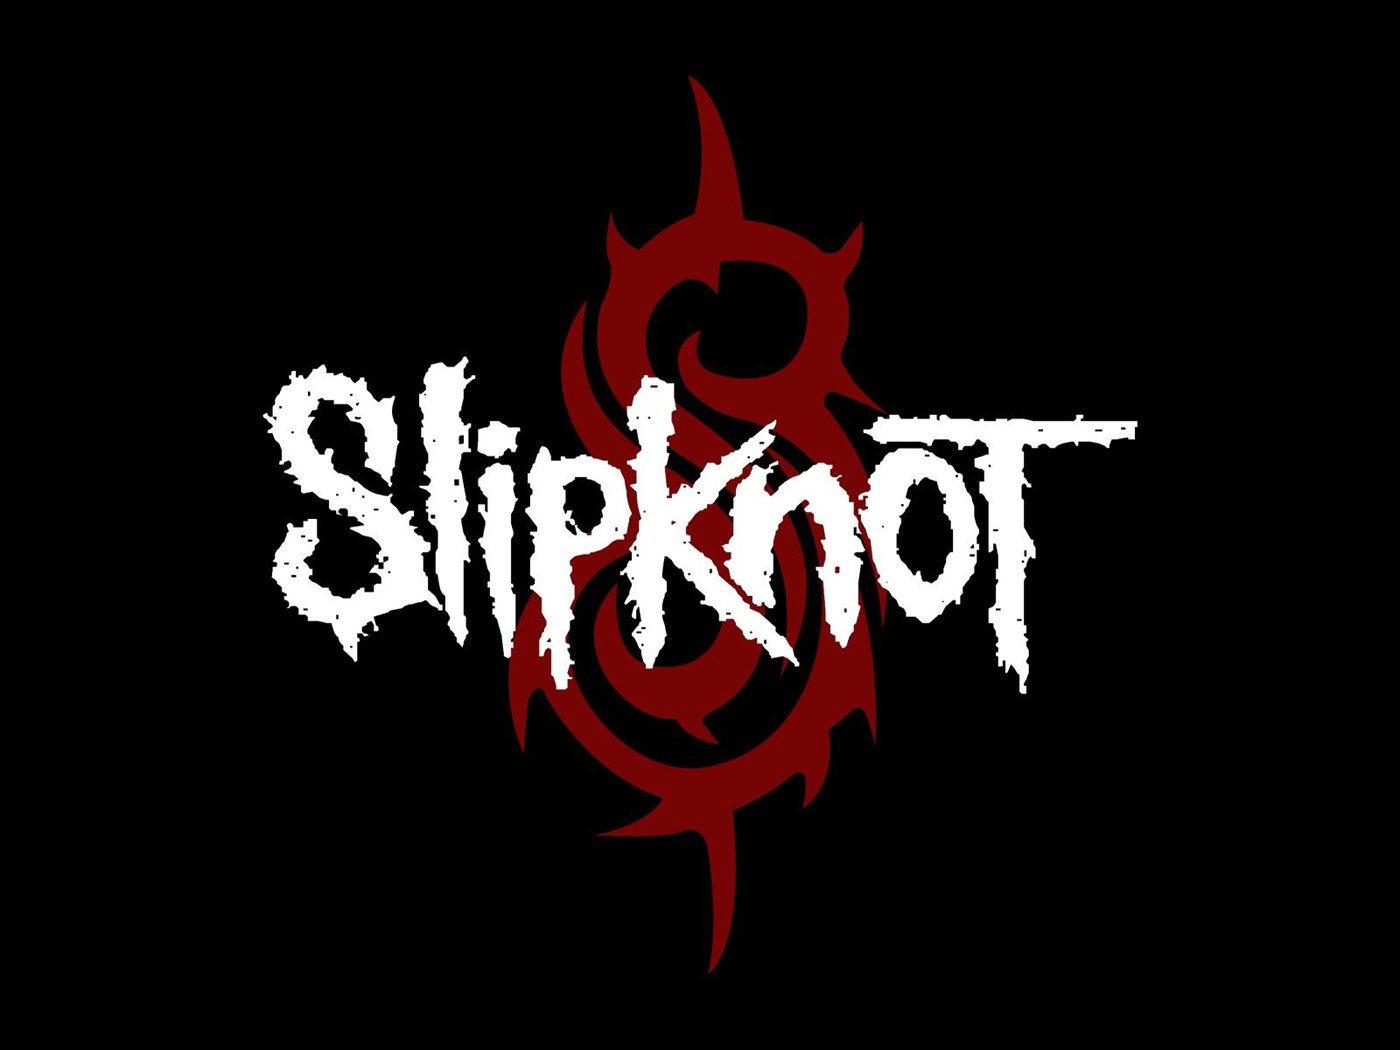 Slipknot logo slipknot symbol meaning history and evolution font of the slipknot logo biocorpaavc Choice Image